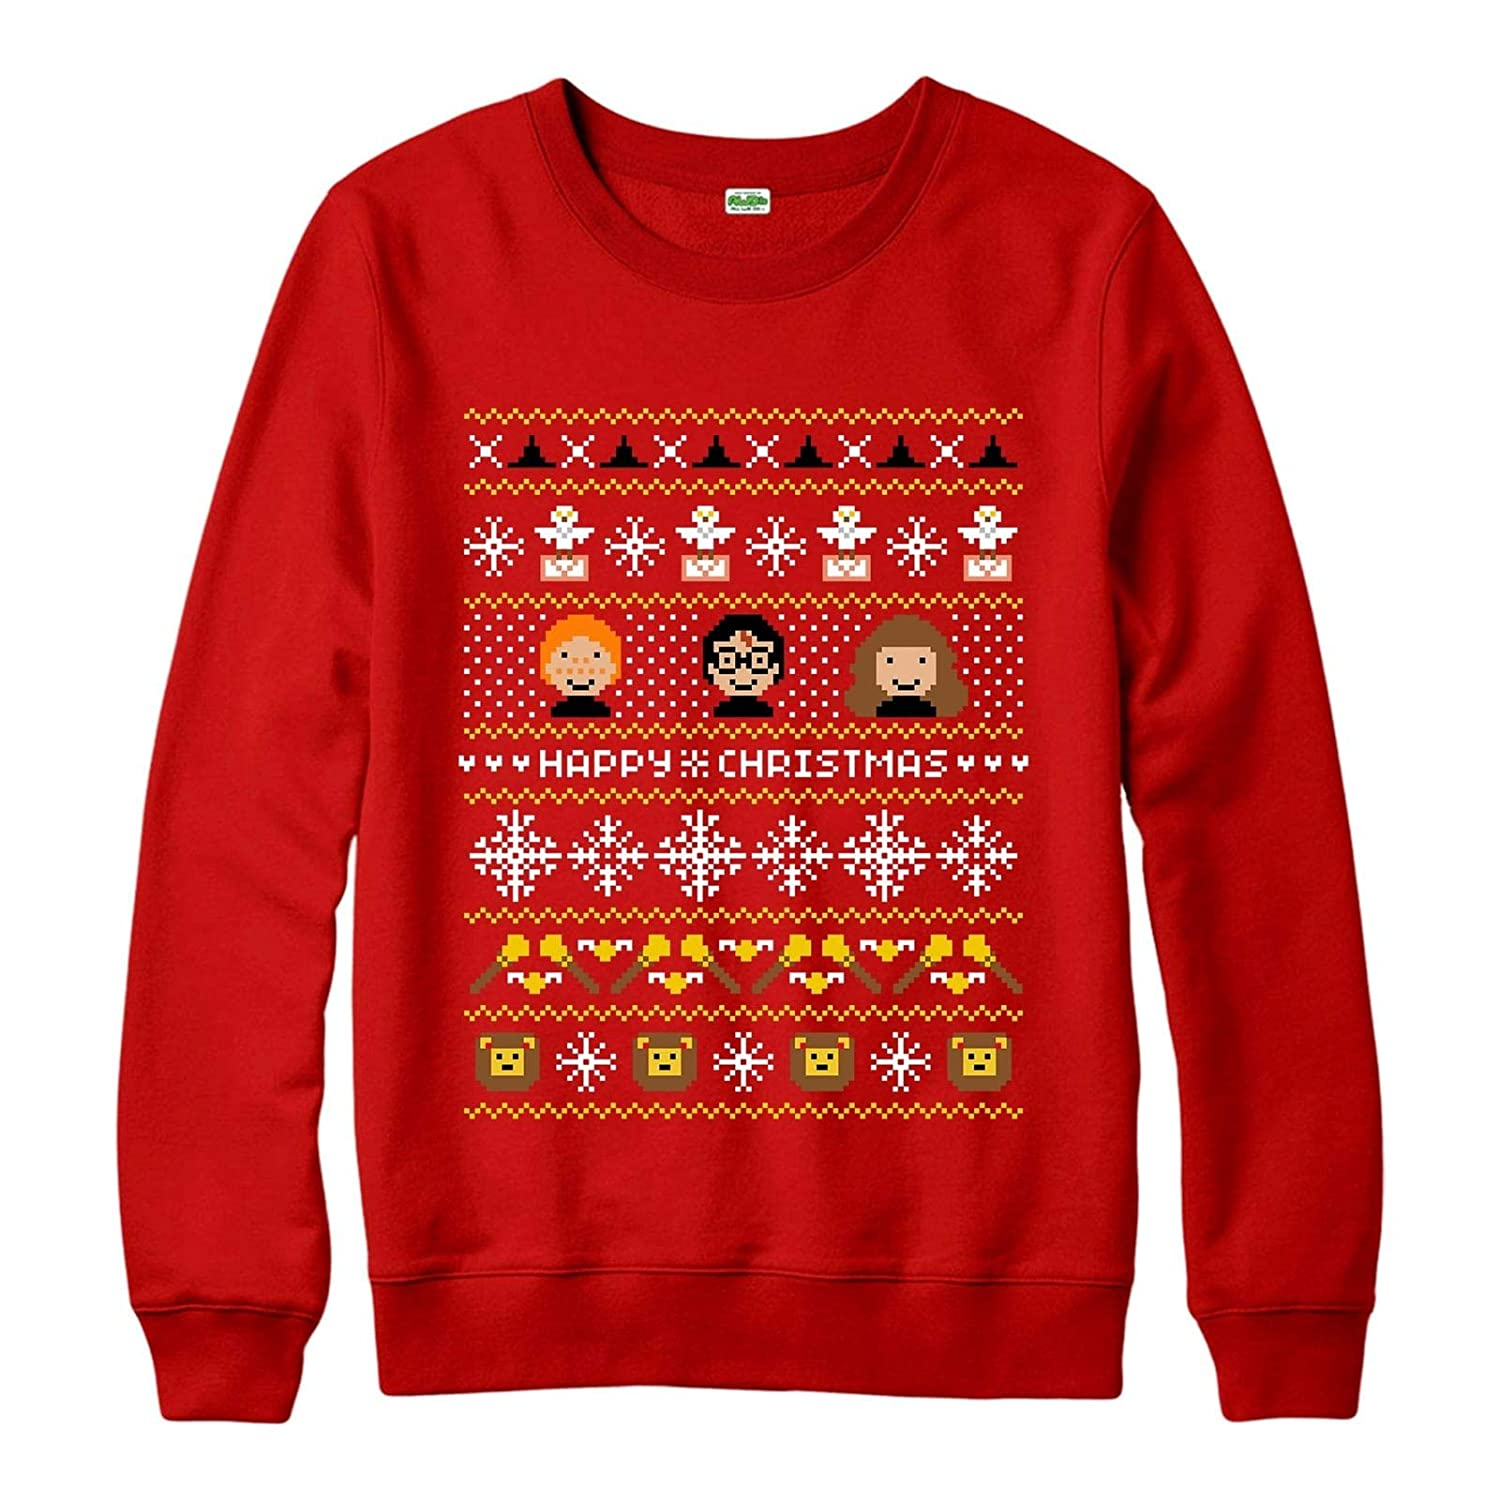 Spoofy Clothing Harry Potter Christmas Jumper, Hermione Ron Xmas Festive Adult & Kids Sizes